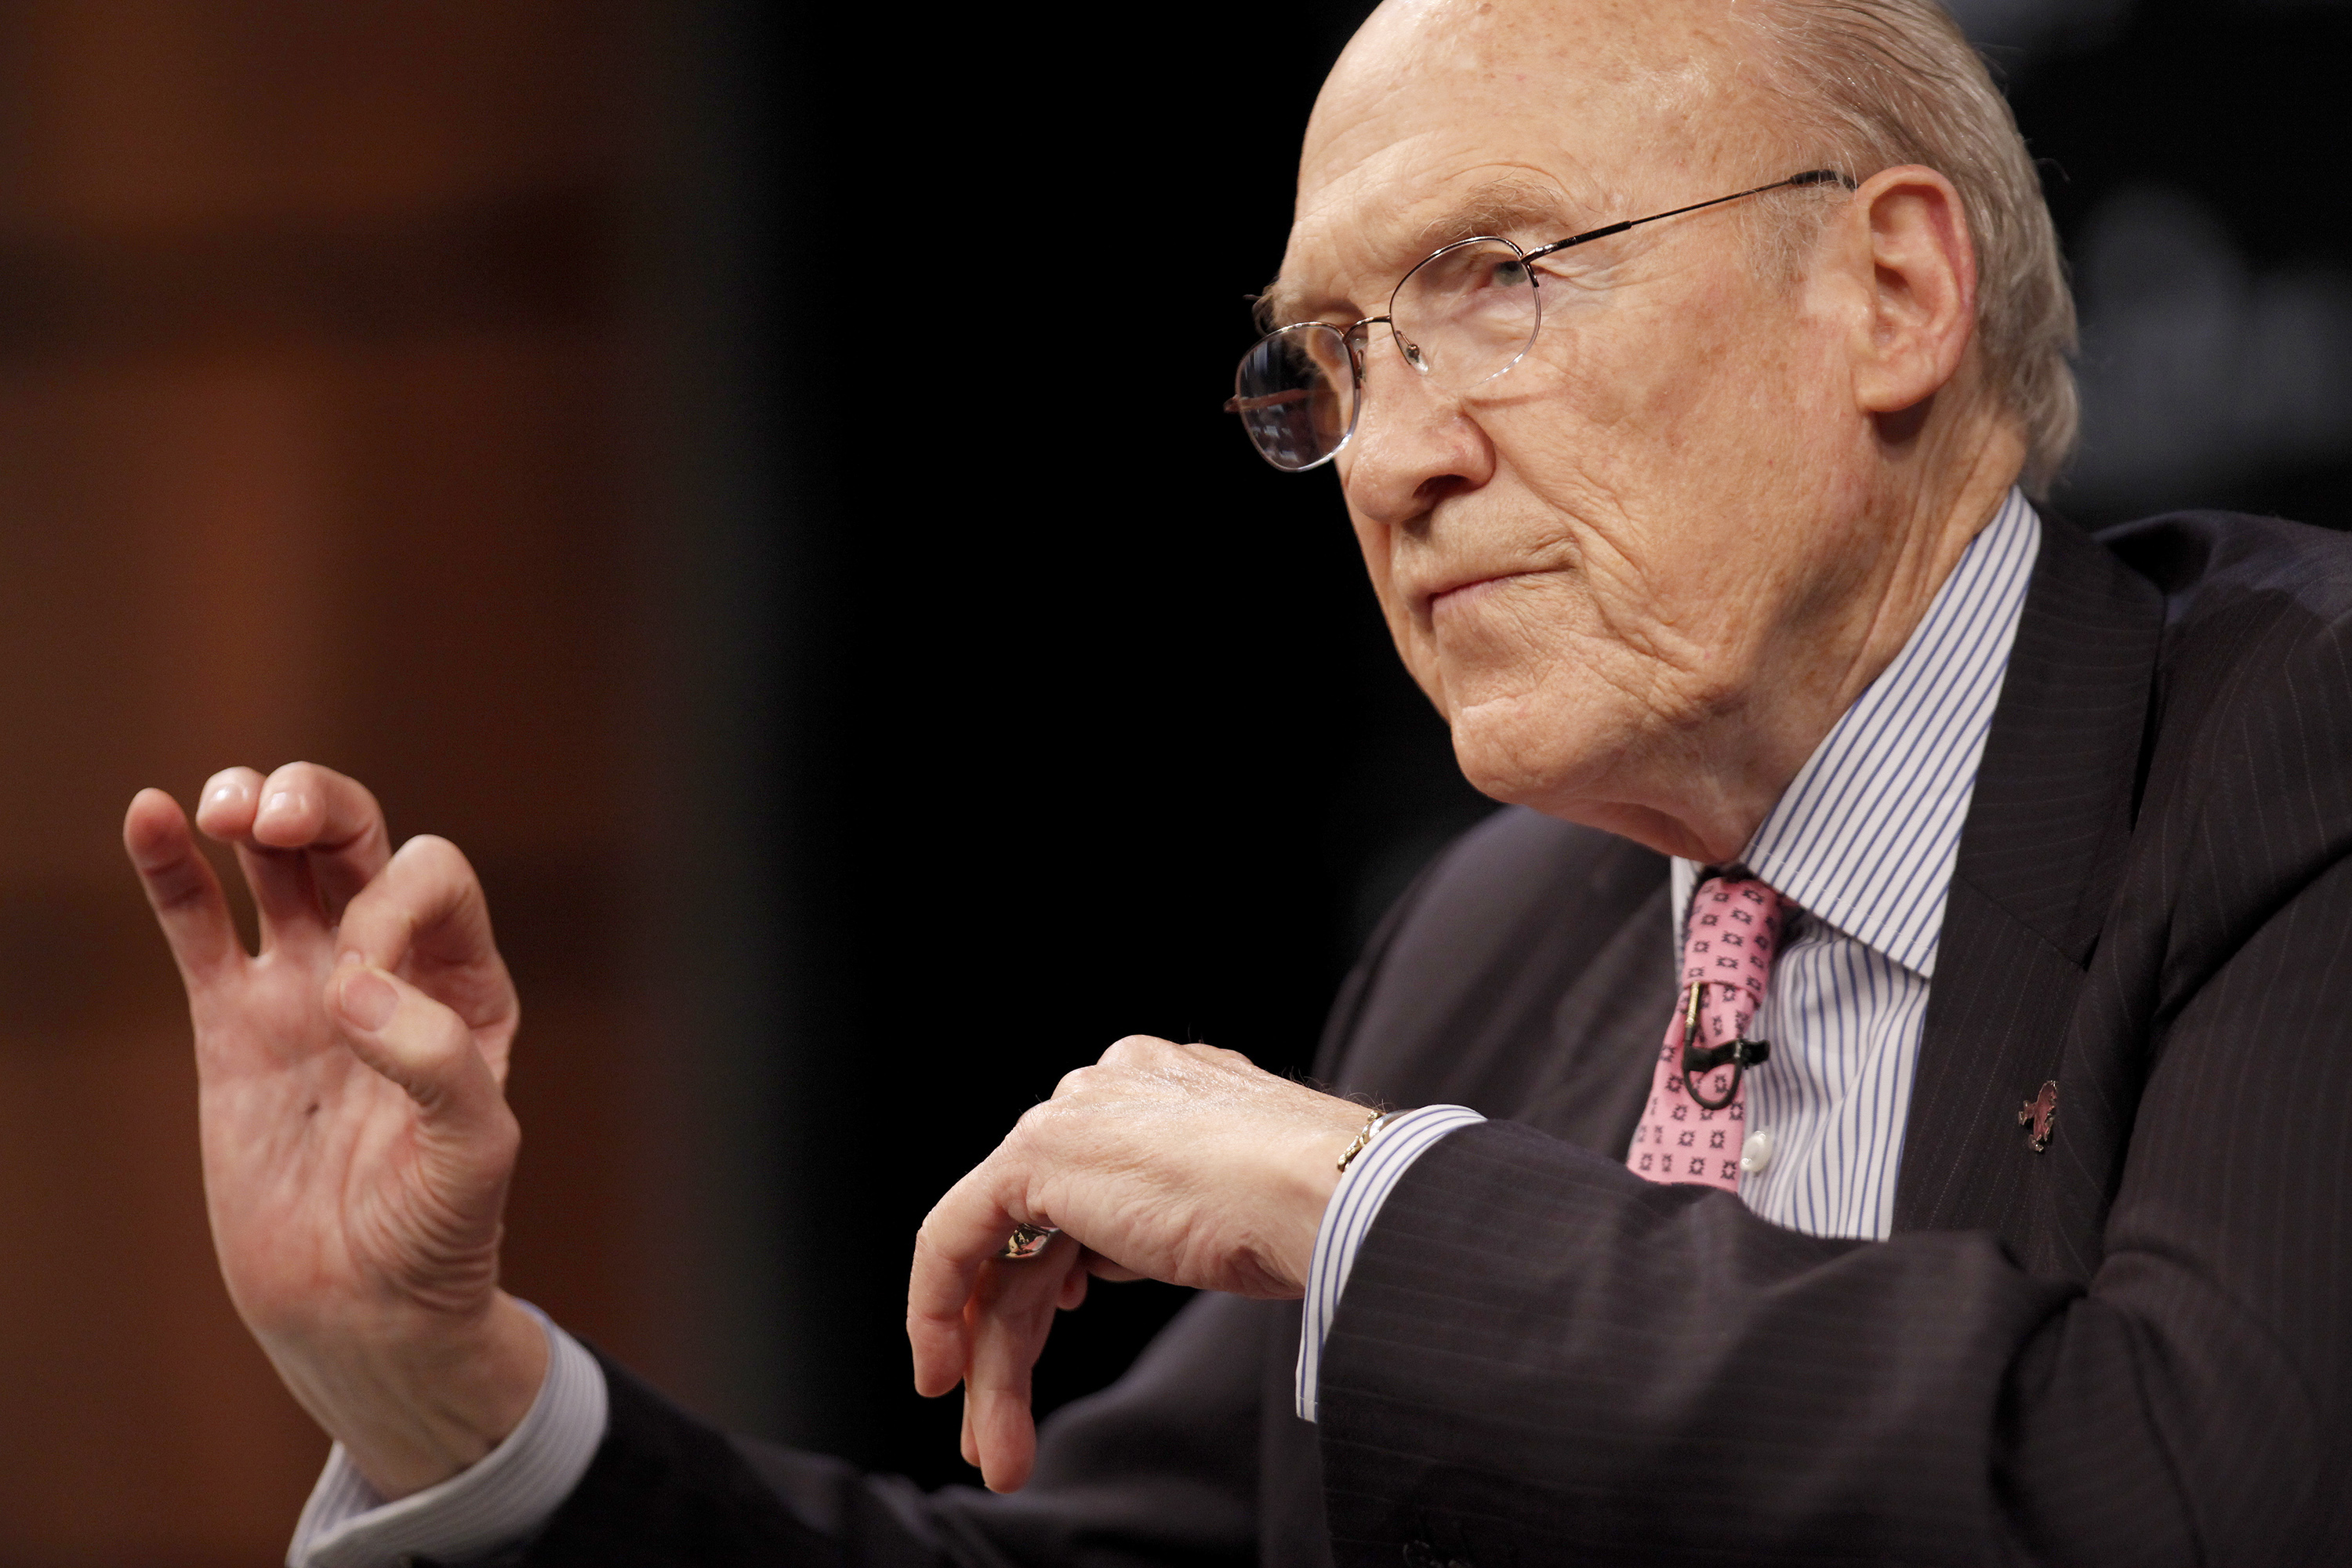 Alan Simpson, former co-chairman of the National Commission on Fiscal Responsibility and Reform, speaks during the Moment Of Truth Project event in Washington, D.C., U.S., on April 19, 2013.